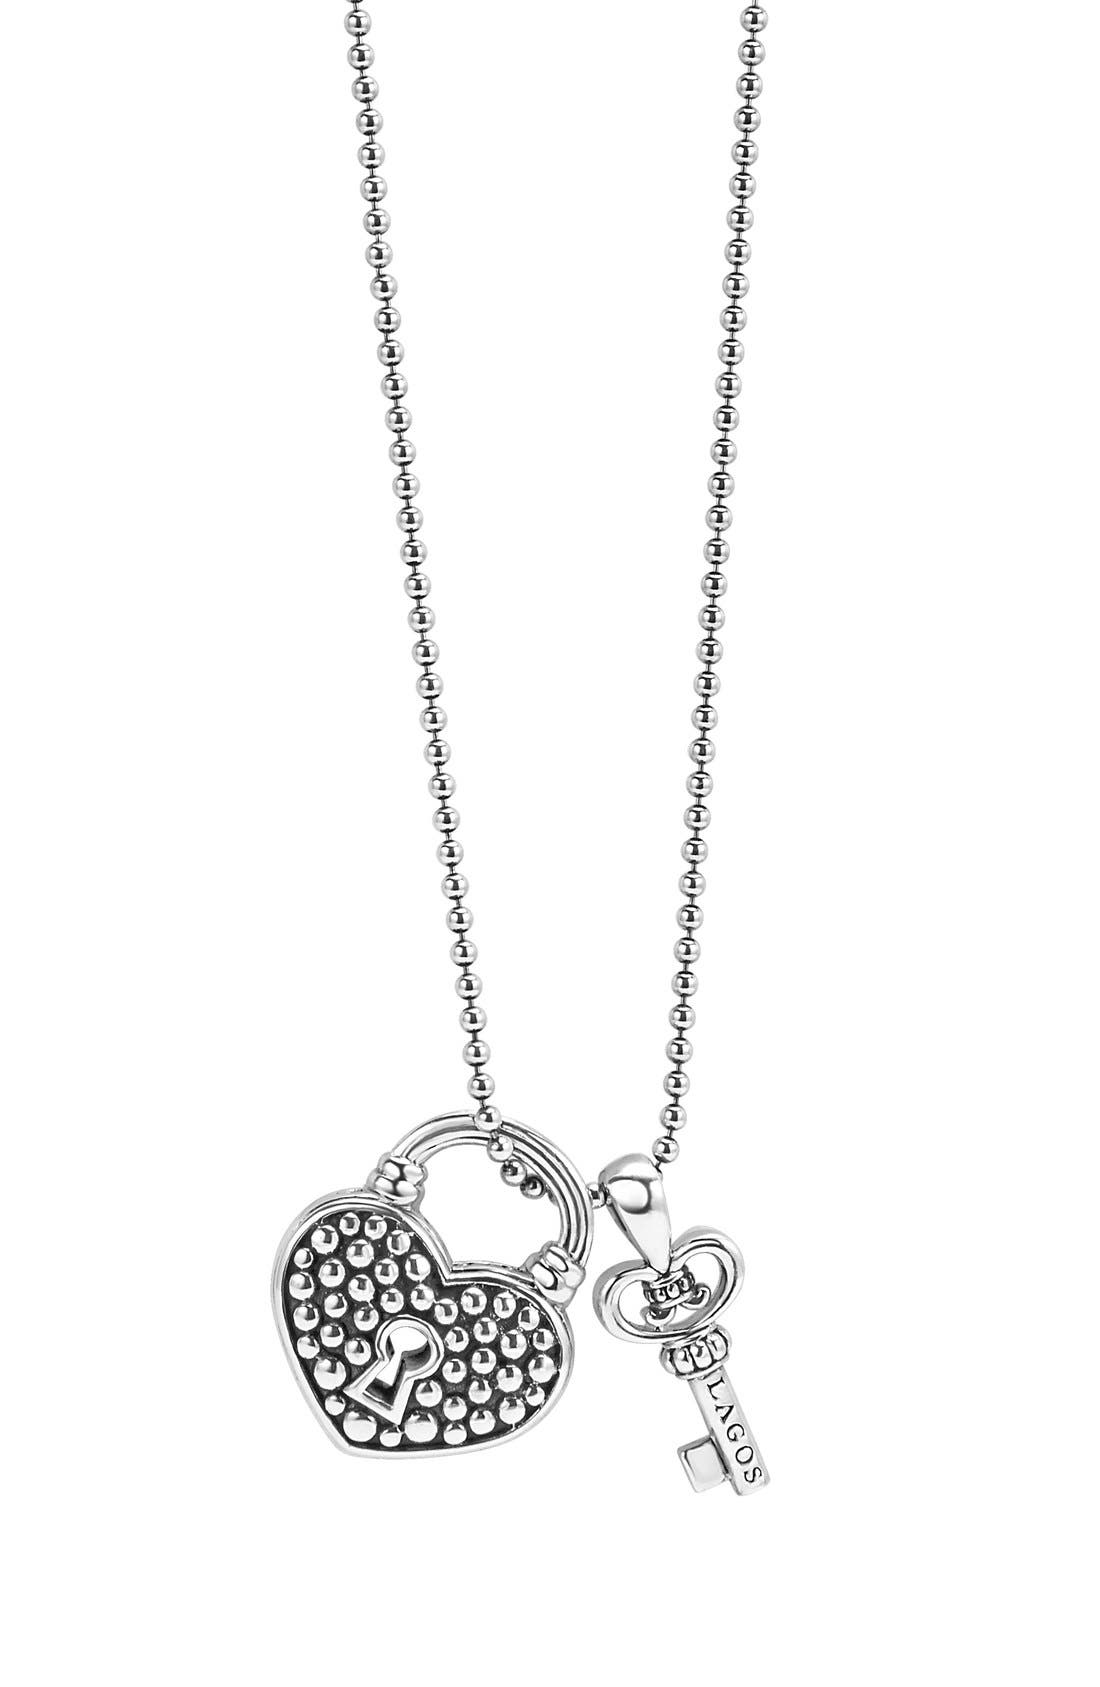 LAGOS Beloved Heart Lock & Key Pendant Necklace